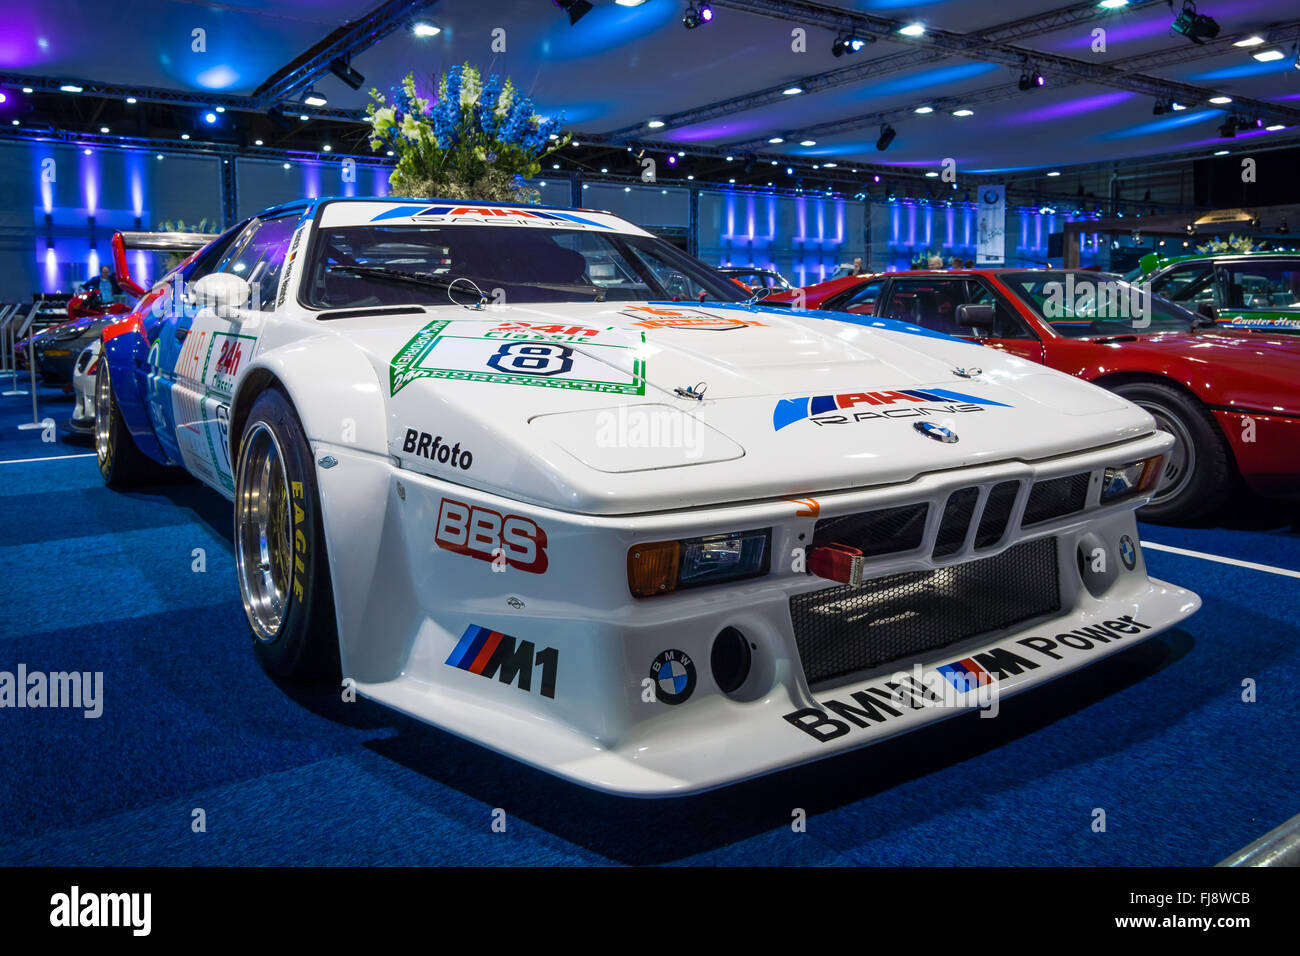 bmw m1 stock photos bmw m1 stock images alamy. Black Bedroom Furniture Sets. Home Design Ideas